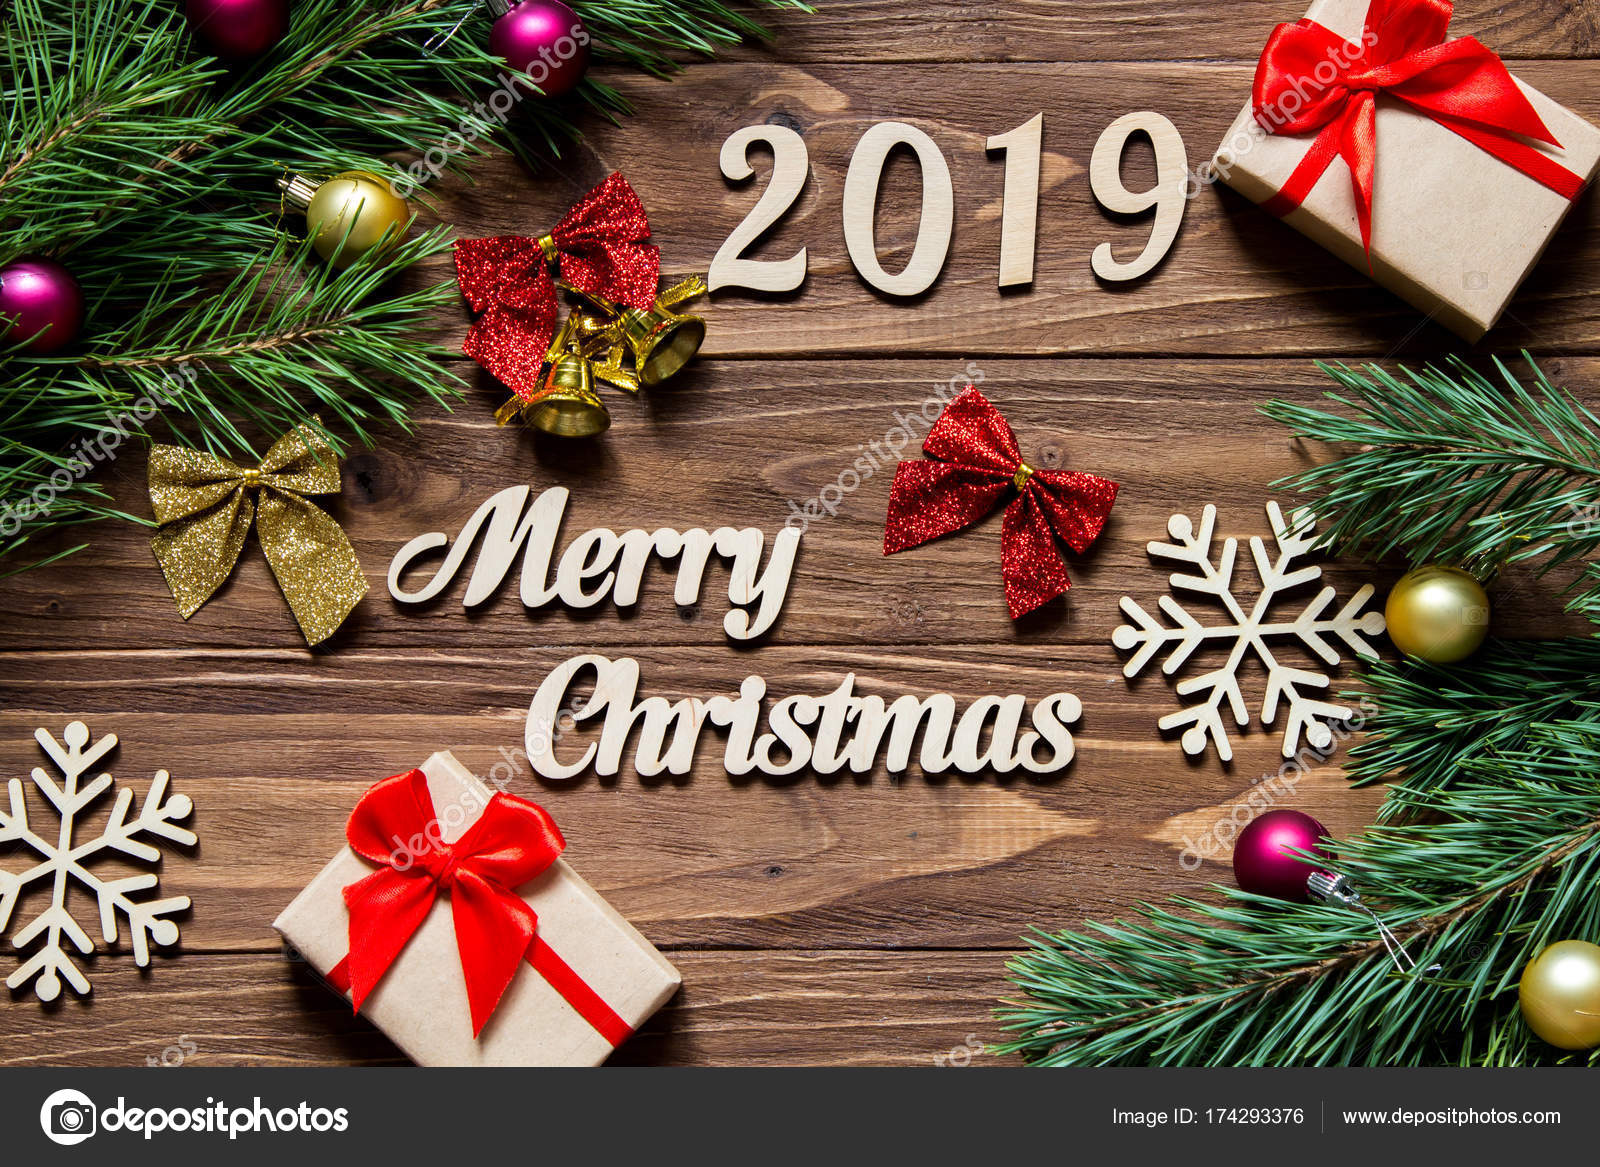 2019 Christmas Gifts Merry Christmas 2019. Christmas gifts and tinsel on the wooden